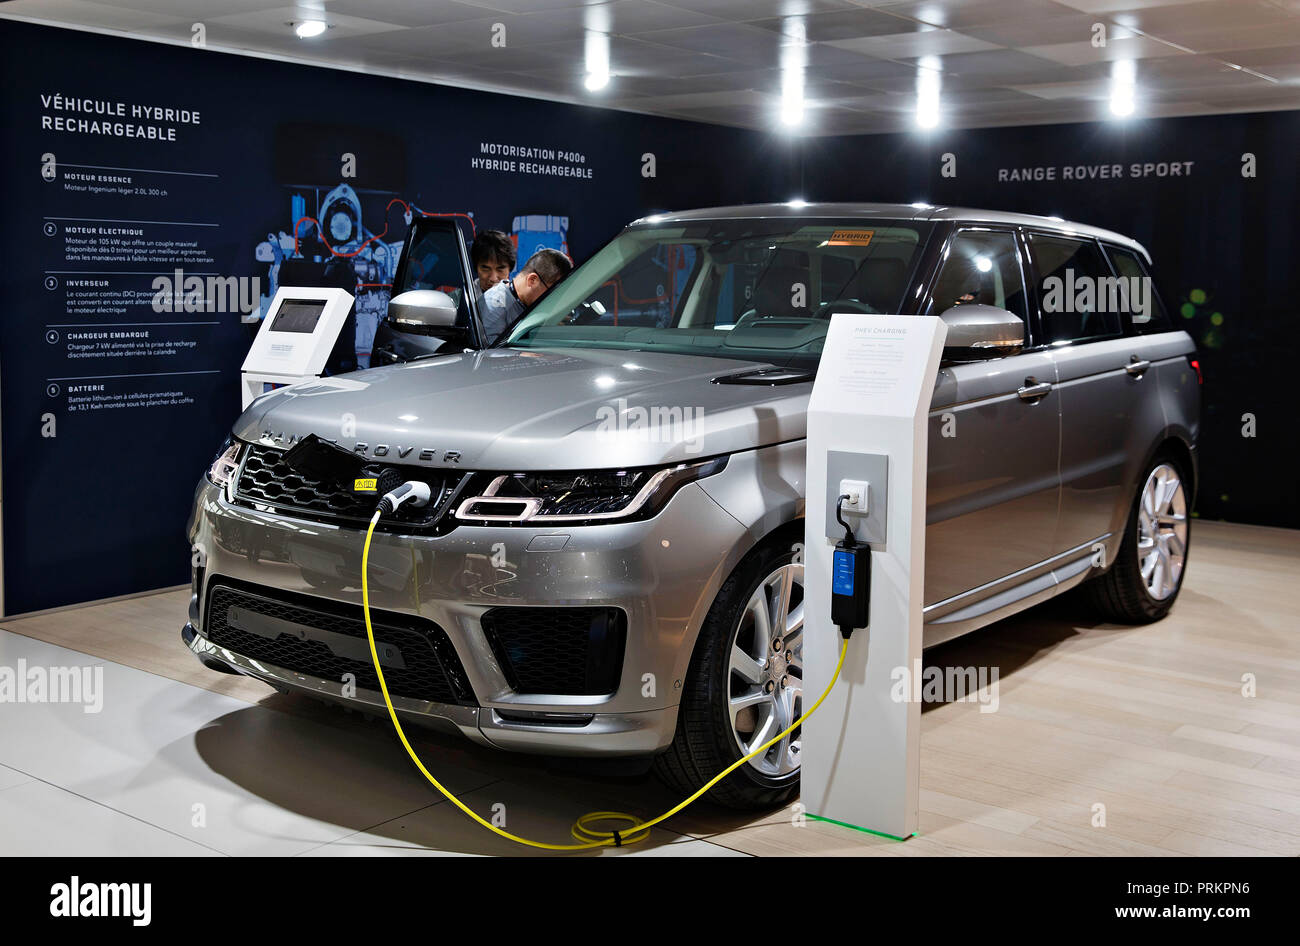 Range Rover Sport is being charged during the International Motor Show in Paris, on Tuesday, October 2nd, 2018. (CTK Photo/Rene Fluger) - Stock Image